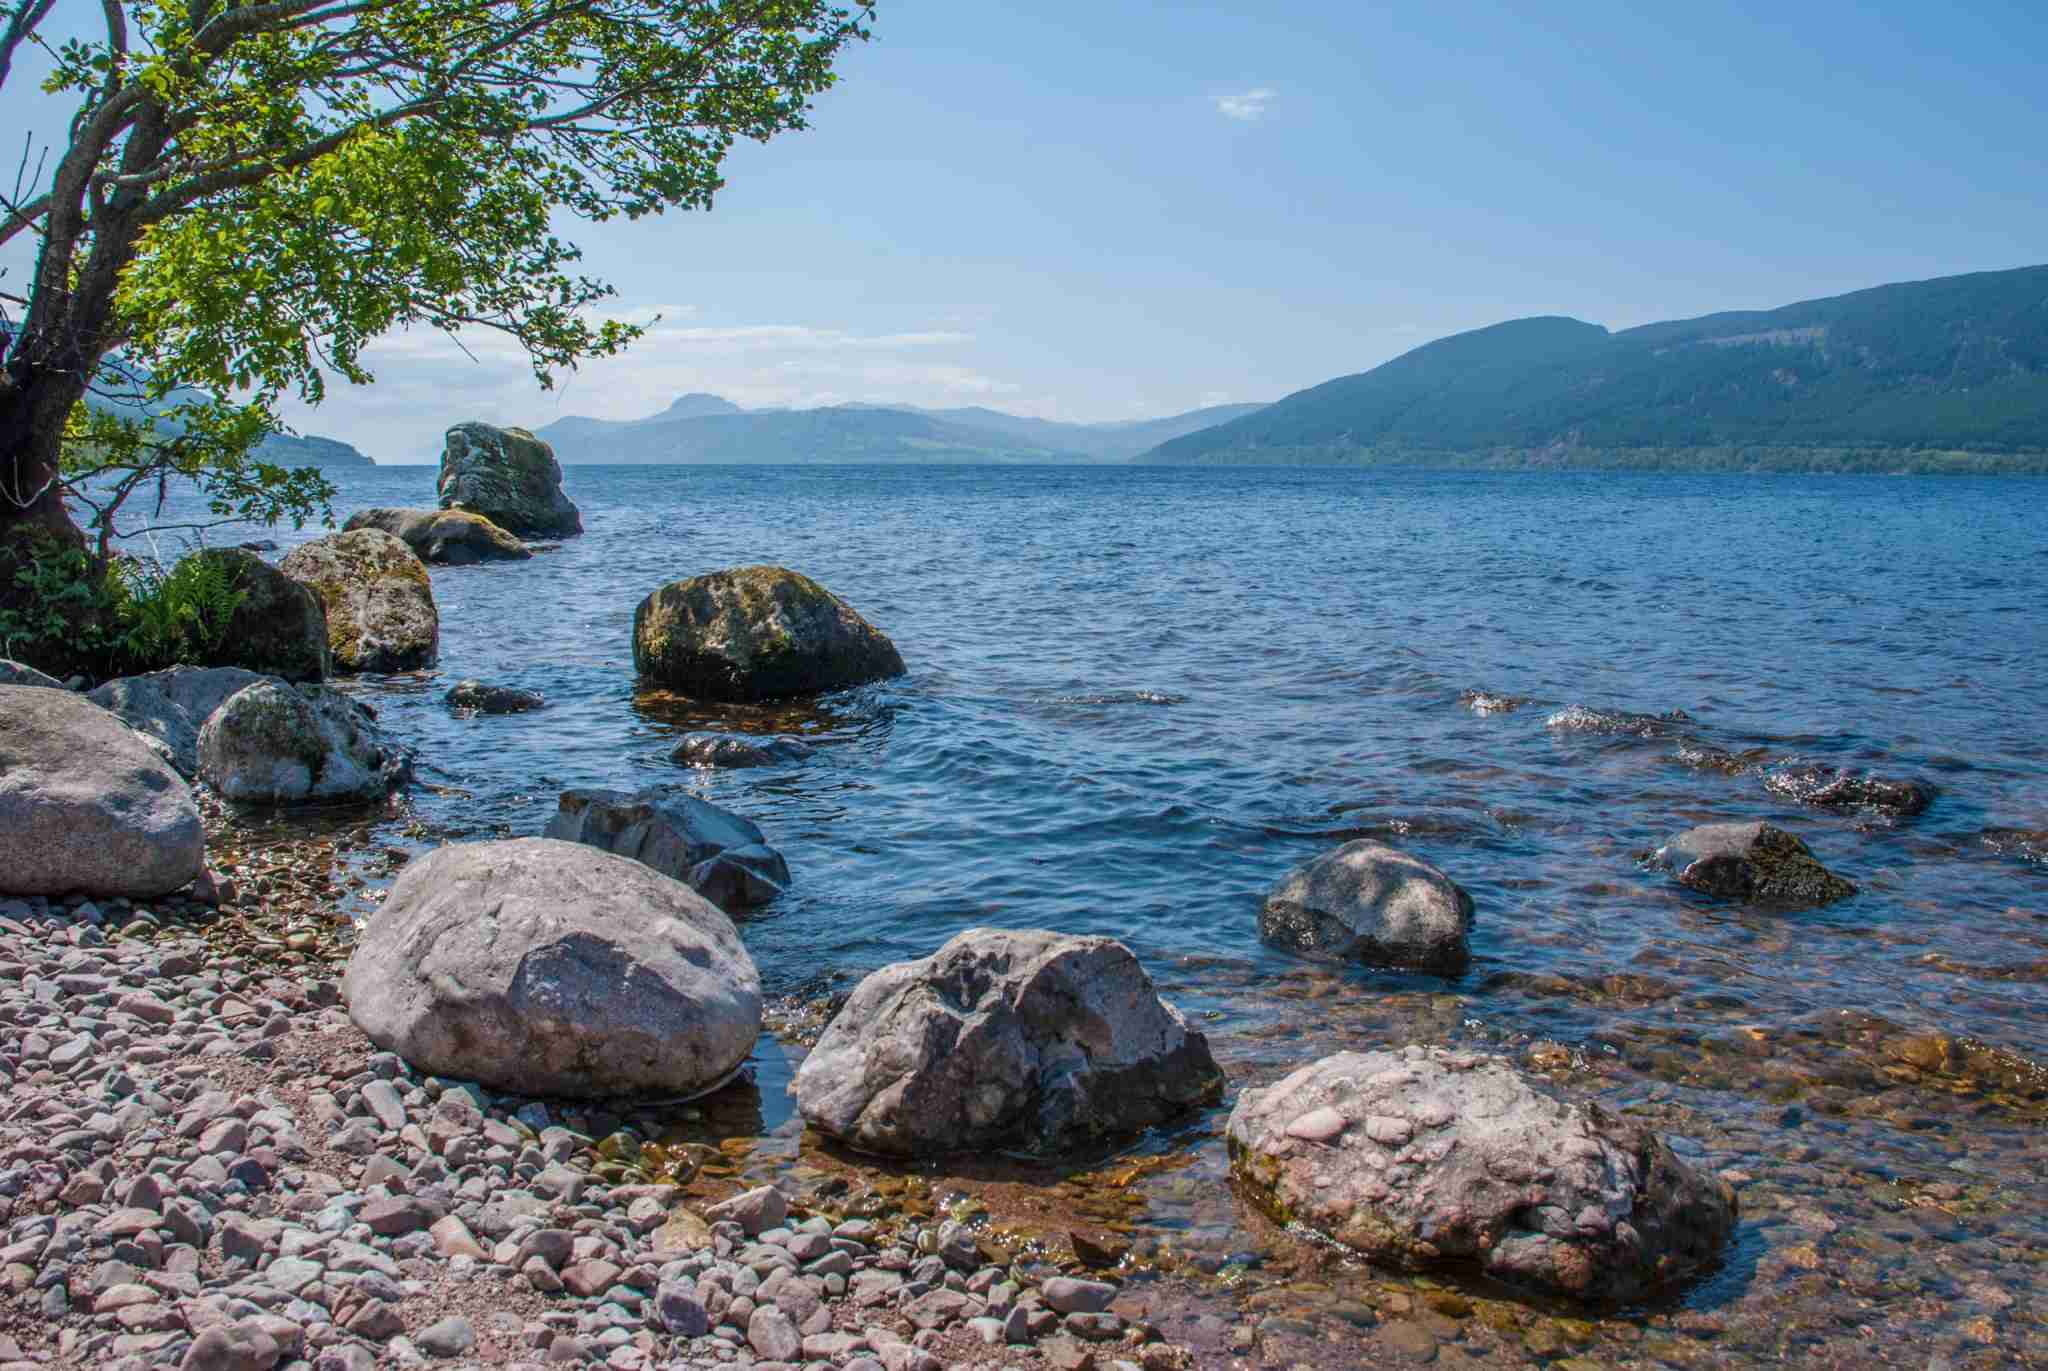 Lakeside view of Loch Ness under blue skies with distant clouds in summertime, Loch Ness, Fort Augustus, Scottish Highlands, Scotland, Uk, Europe (Photo by Eve Livesy/Getty Images)